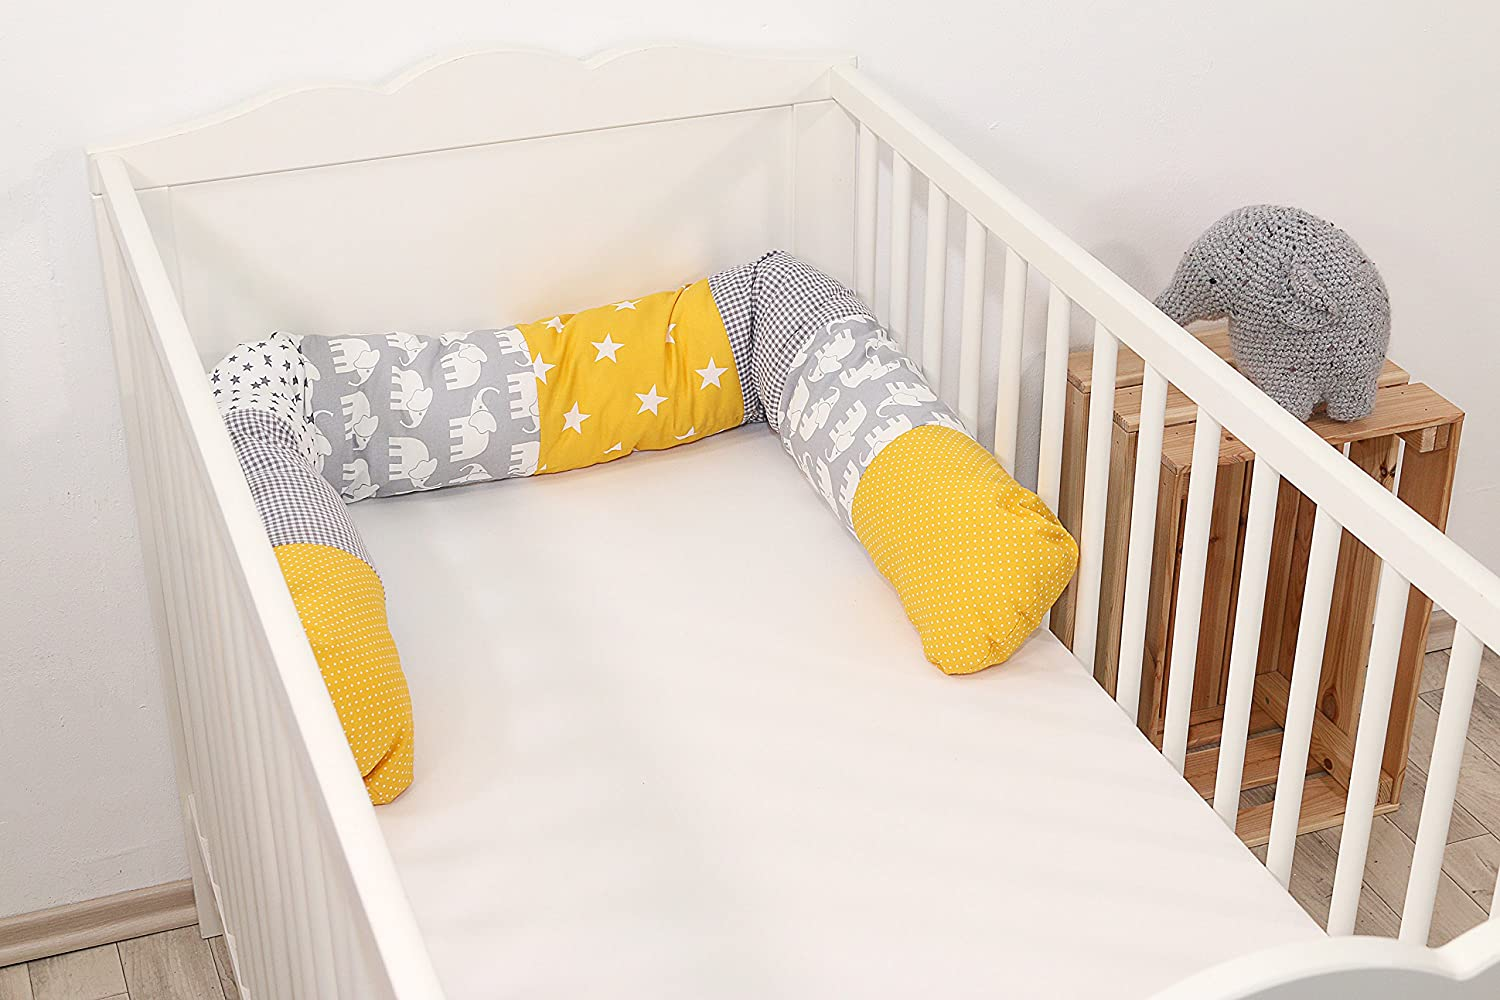 ULLENBOOM//® Bumper Snake Pillow Yellow Elephants cot Bumper/ 120x13 cm, Offers Ideal Protection from cot Edges, Support Pillow